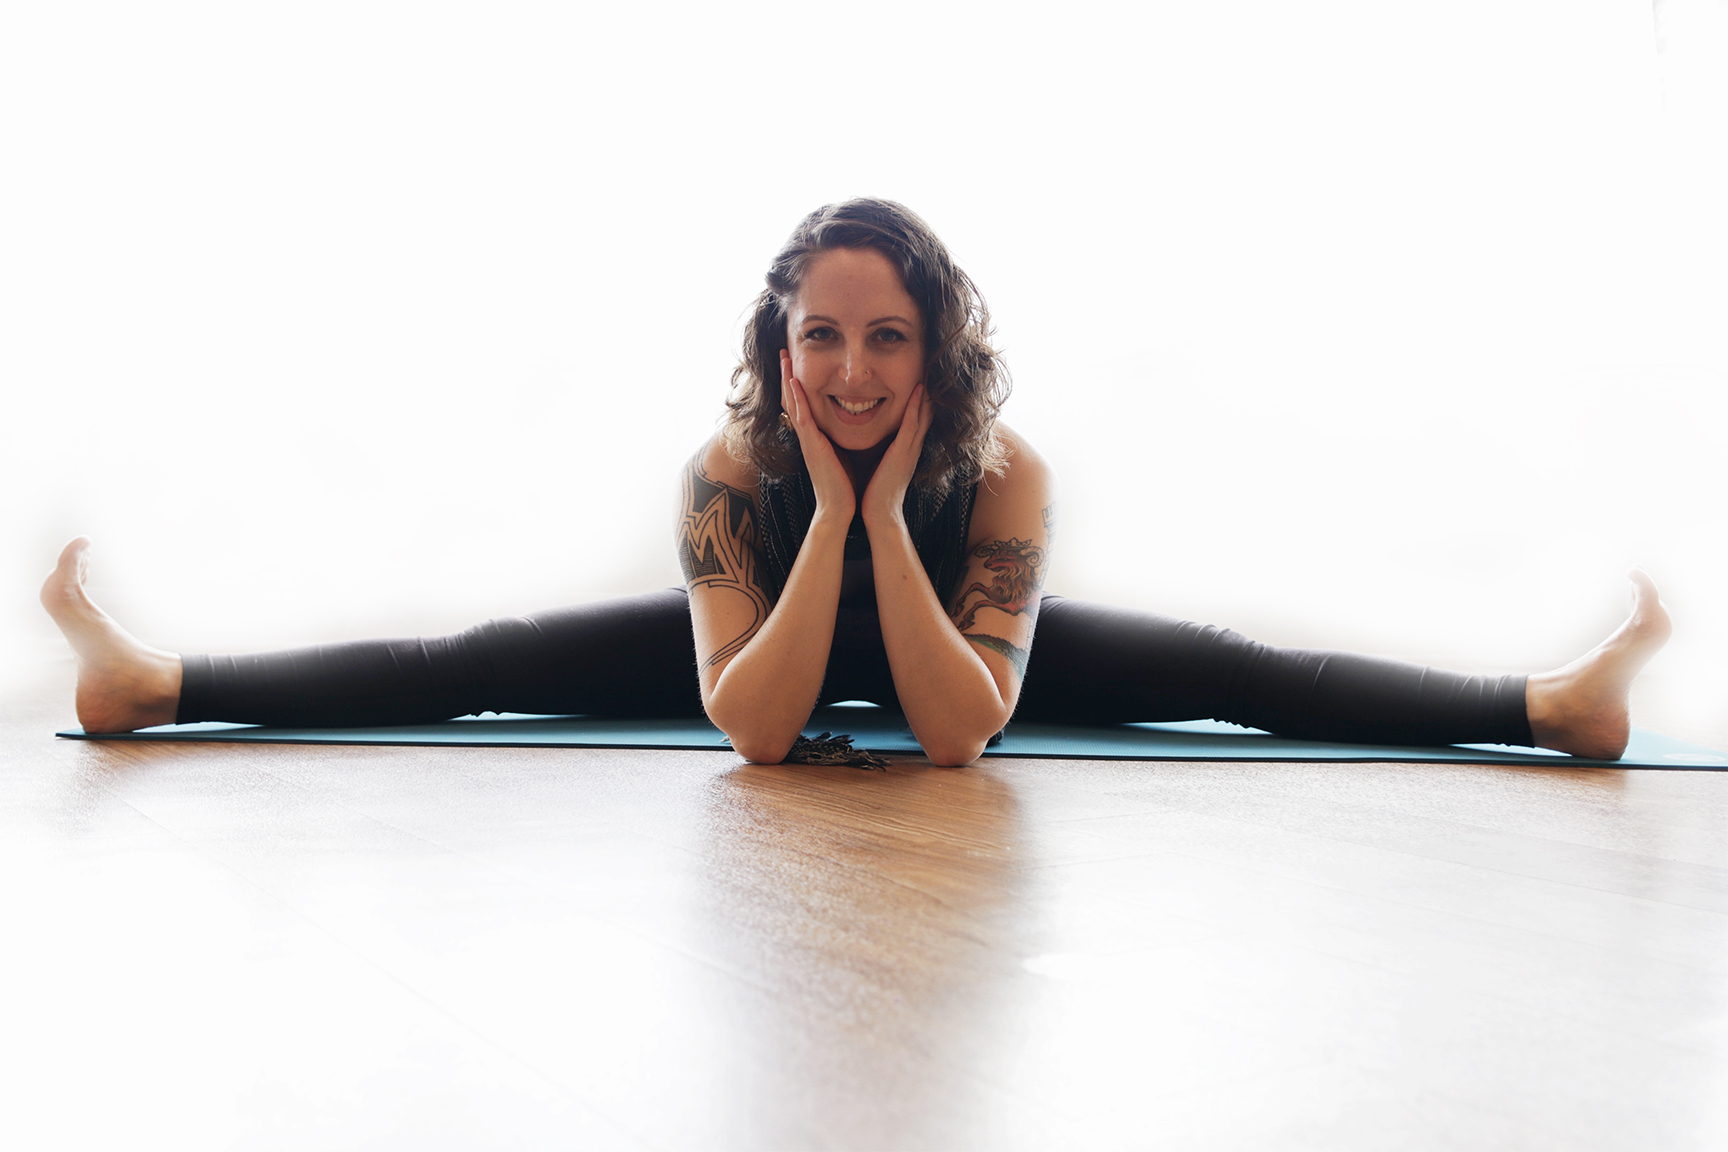 Liz Laneri, Certified Yoga Teacher and Licensed Massage Therapist - When people ask me how often I do yoga, I tell them I think of my yoga practice like meals, I can't skip it. If food is to yoga as yoga is to breath, well then, here we are. Beyond my love of food, much of my energy is focused on movement and bodywork. As a certified yoga teacher from the Boston Yoga School and licensed massage therapist, I value everything the body has to offer us. It only makes sense to me to combine my love of food with yoga, and sharing it with friends and family.We hope you will also feel inspired by food, friends and yoga and share it within your space.